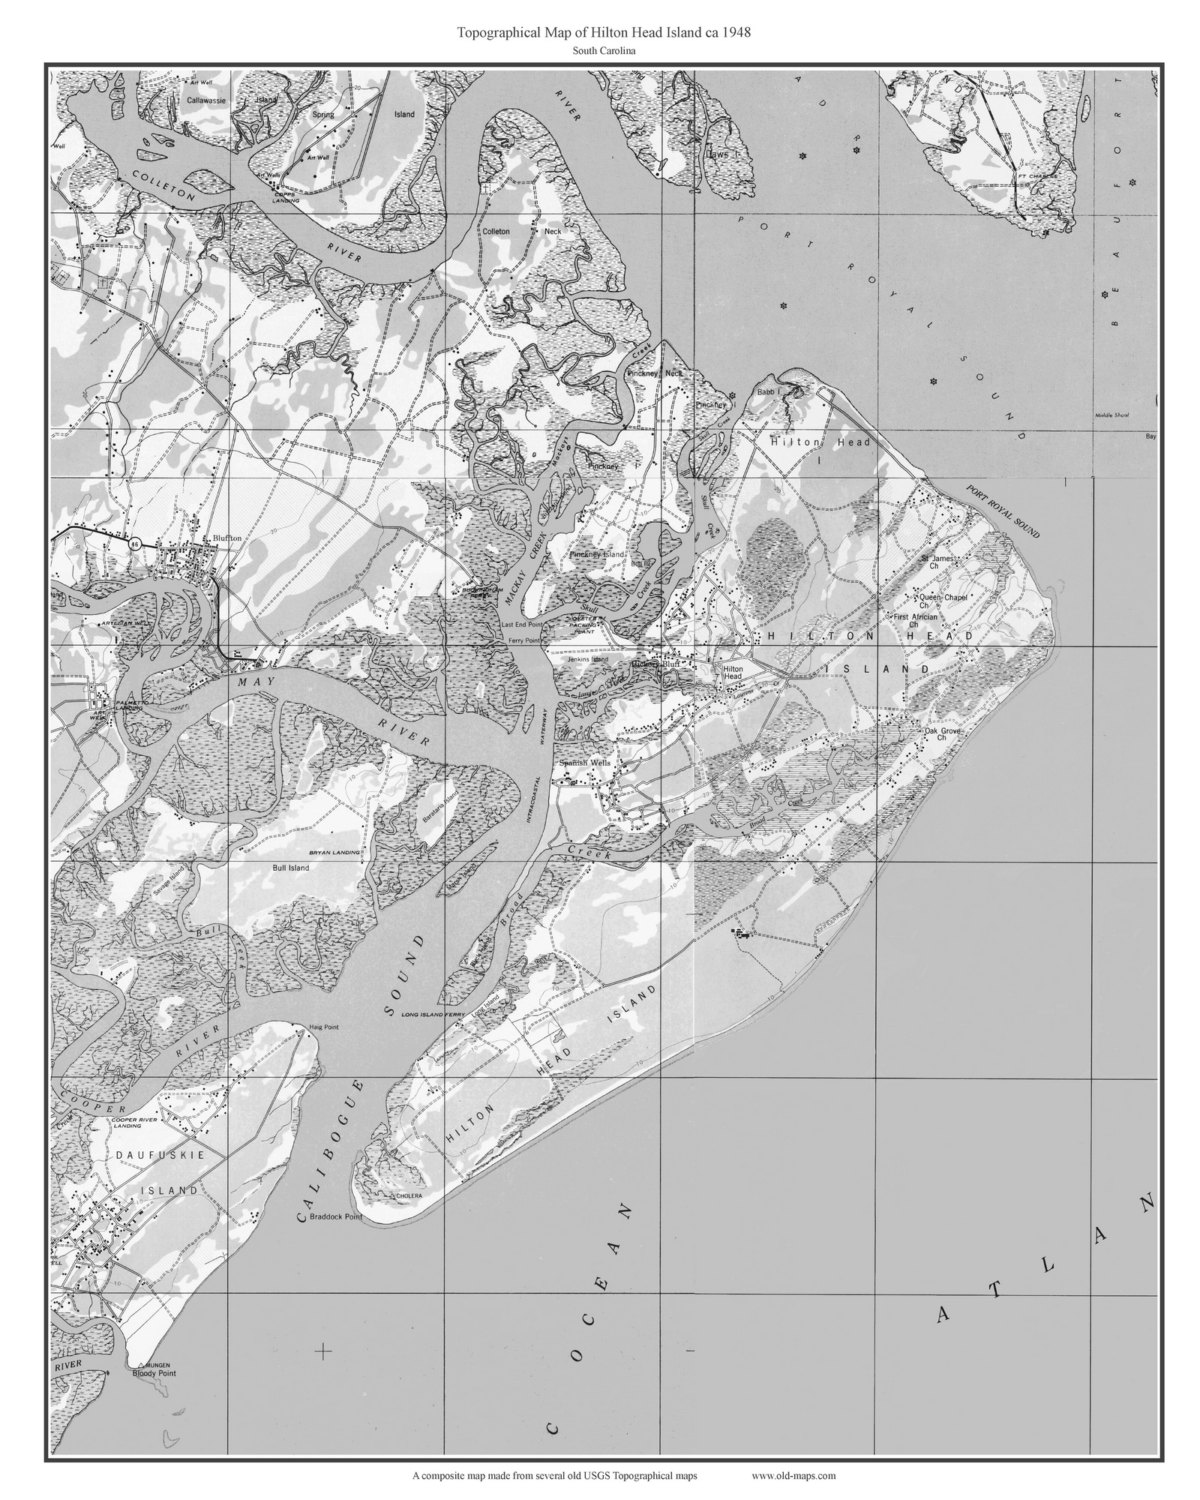 Hilton Head Island Black White 1948 OId Topographic Map